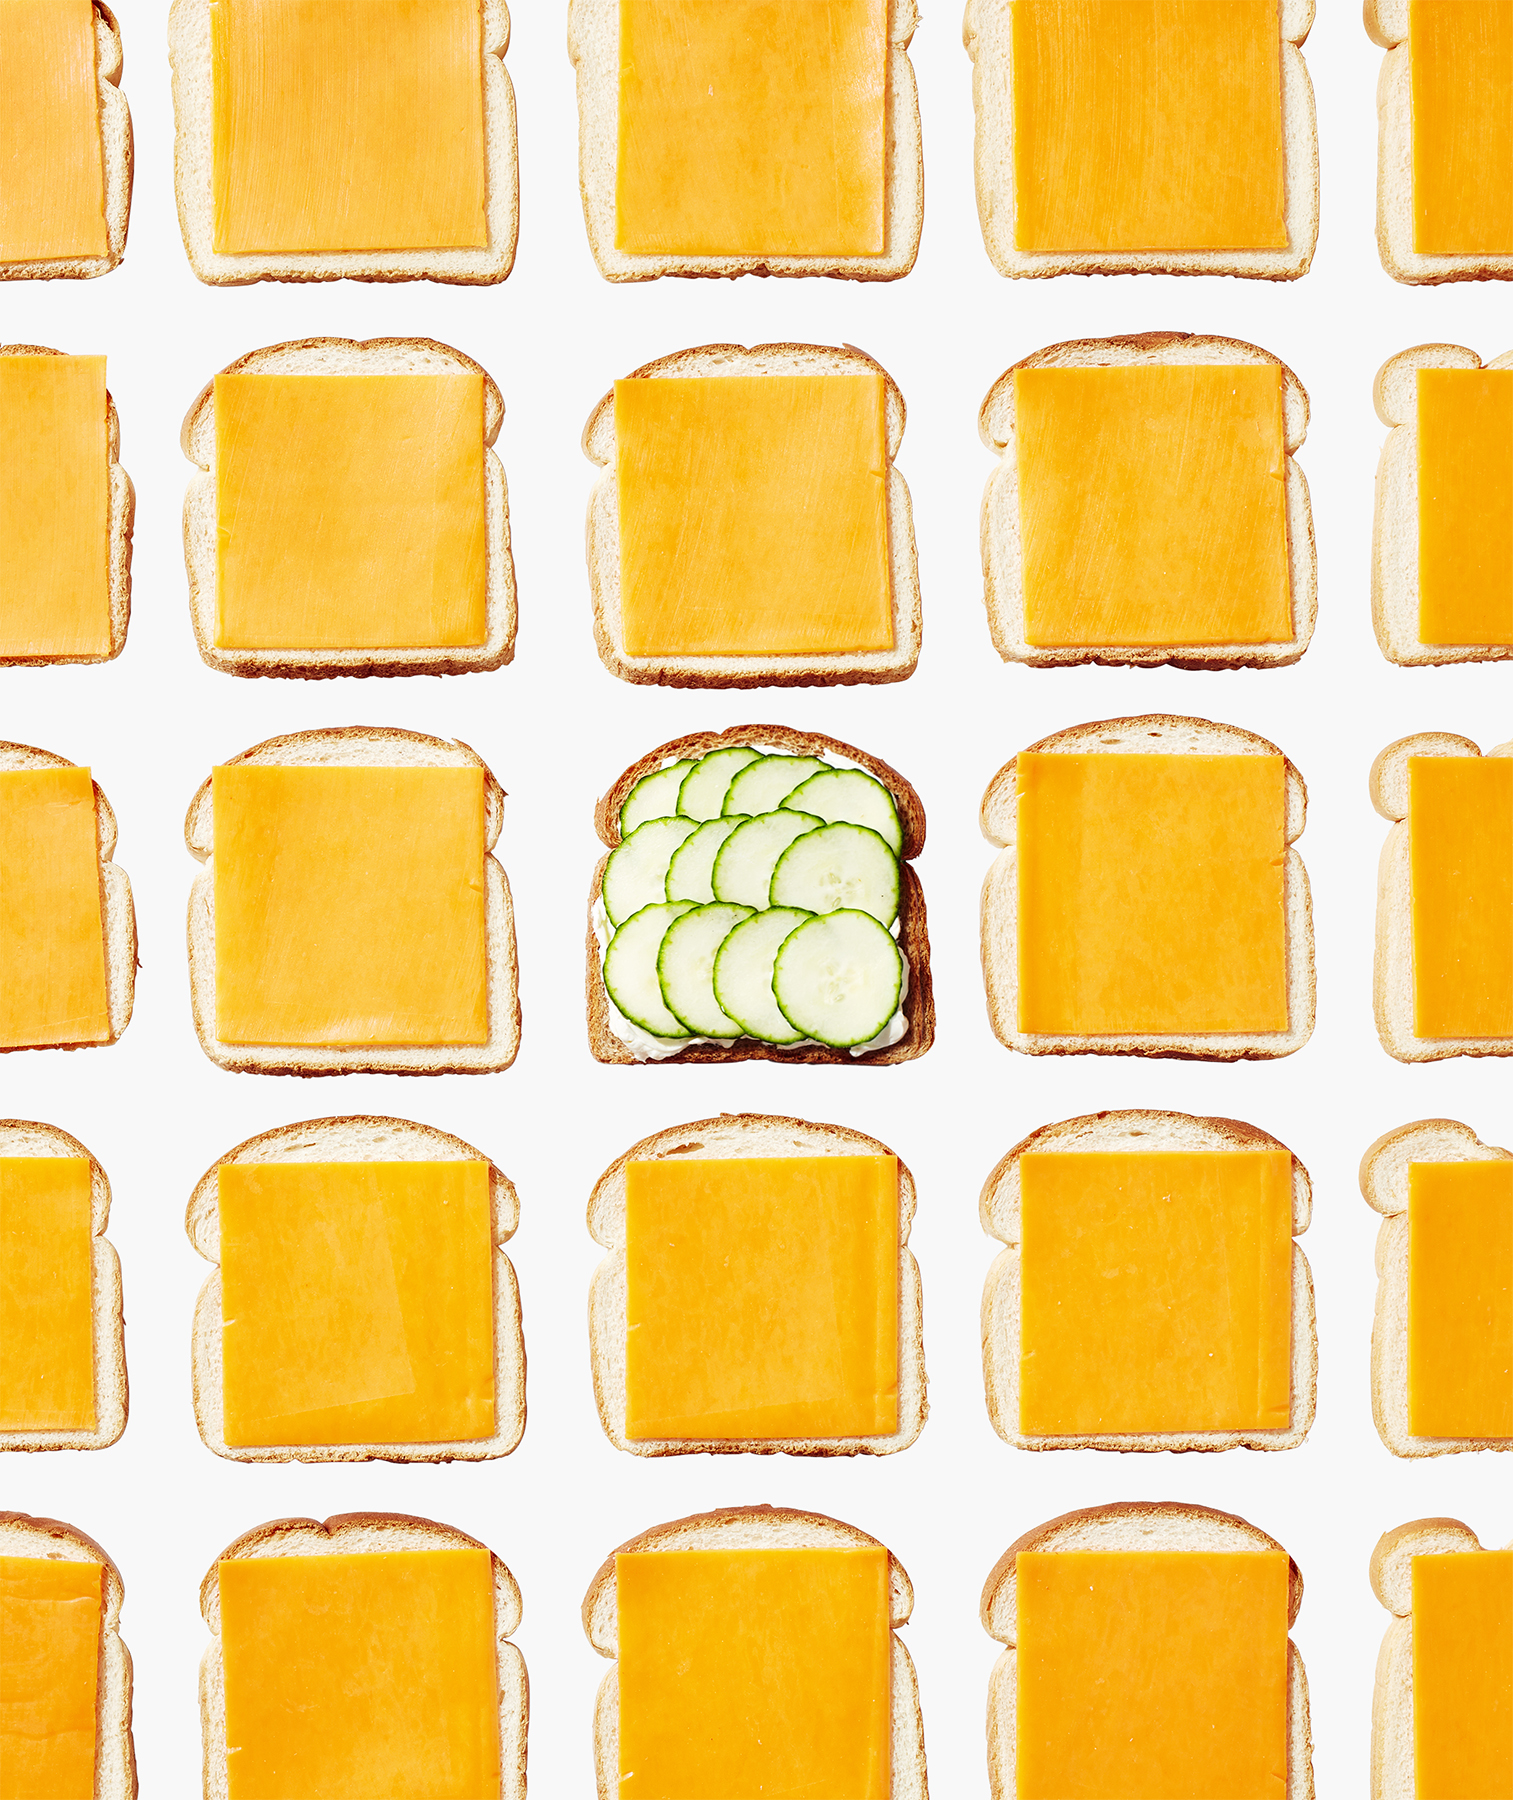 Cheese slices on bread vs. cucumber